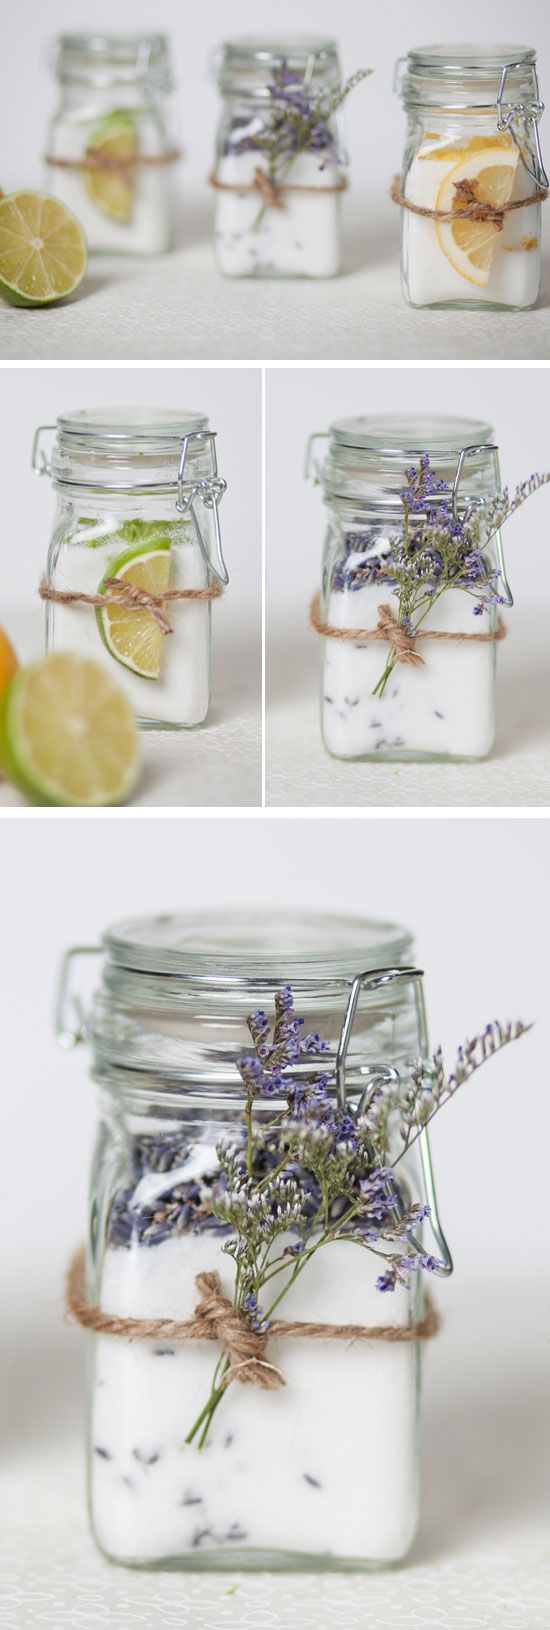 Infused Sugar Jars   Click Pic for 18 DIY Bridal Shower Party Ideas on a Budget   DIY Engagement Party Decorations Ideas Decor